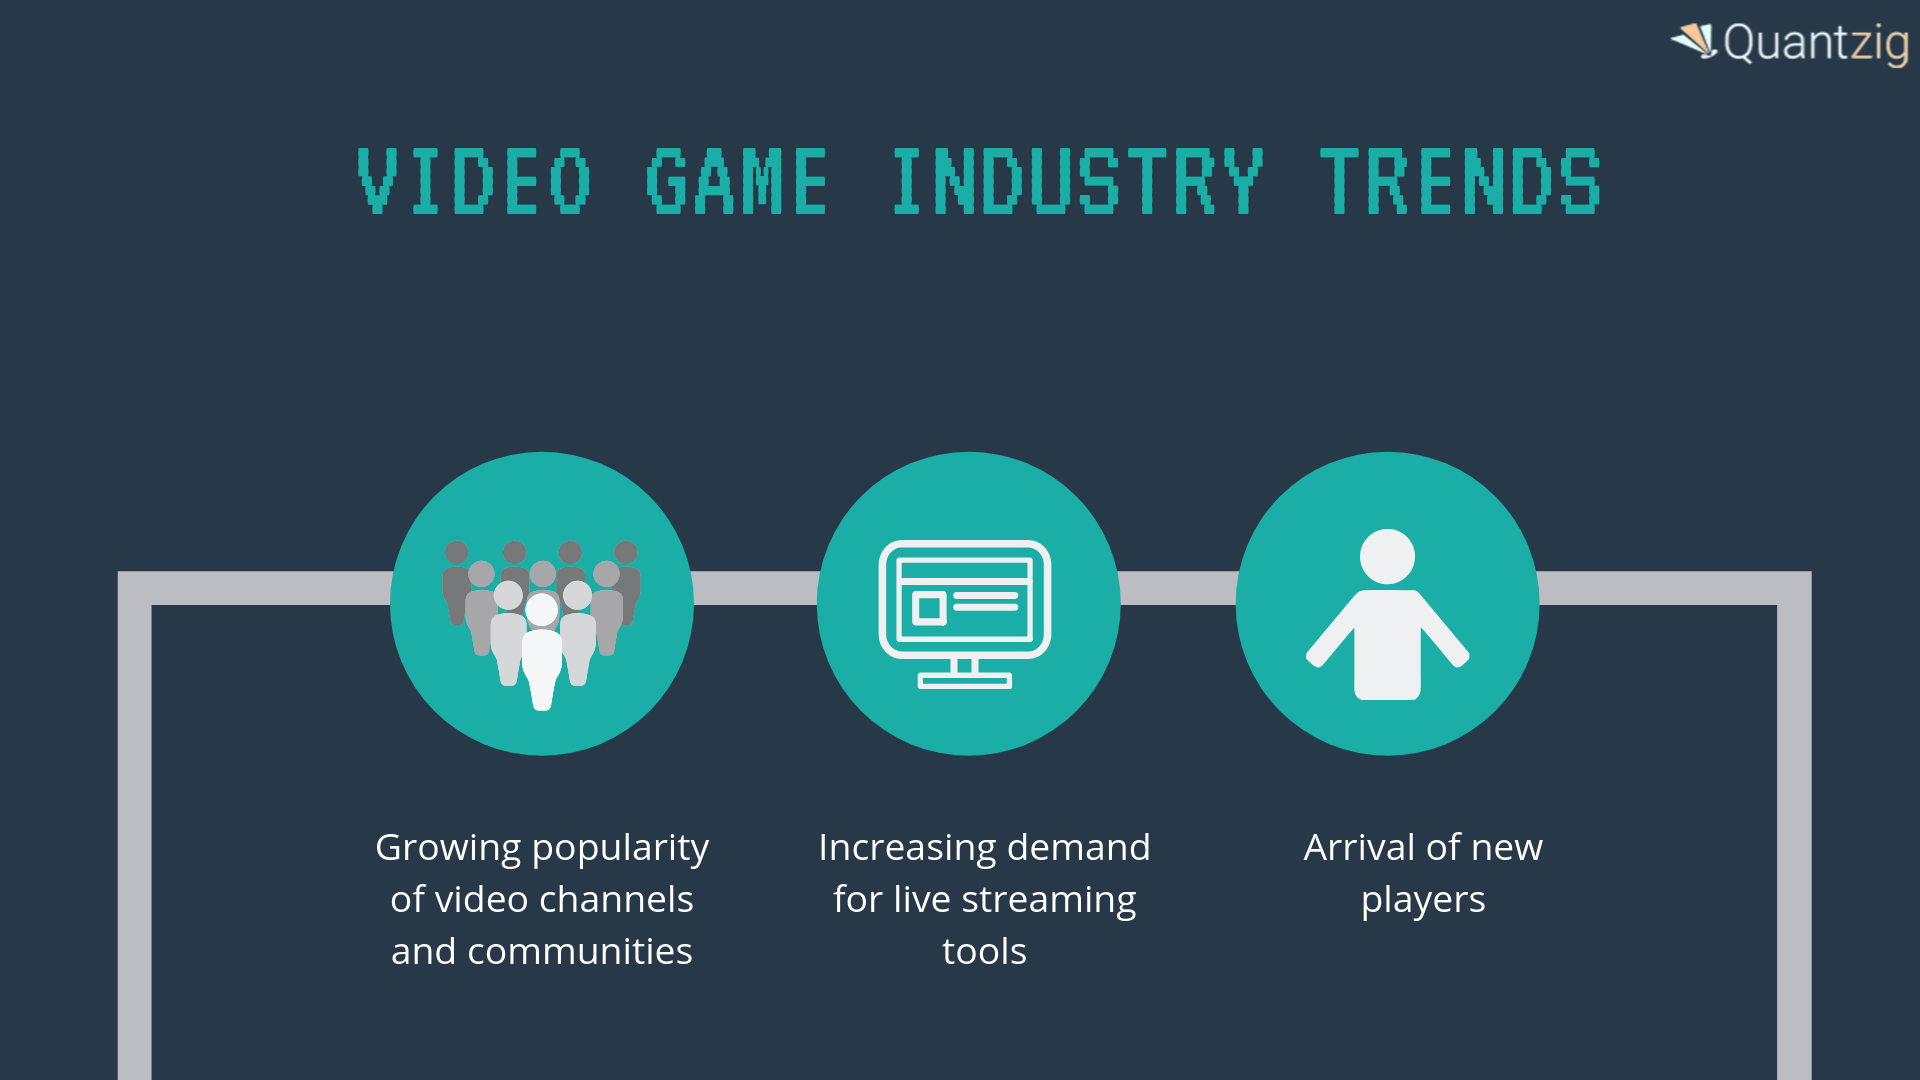 VIDEO GAME INDUSTRY TRENDS